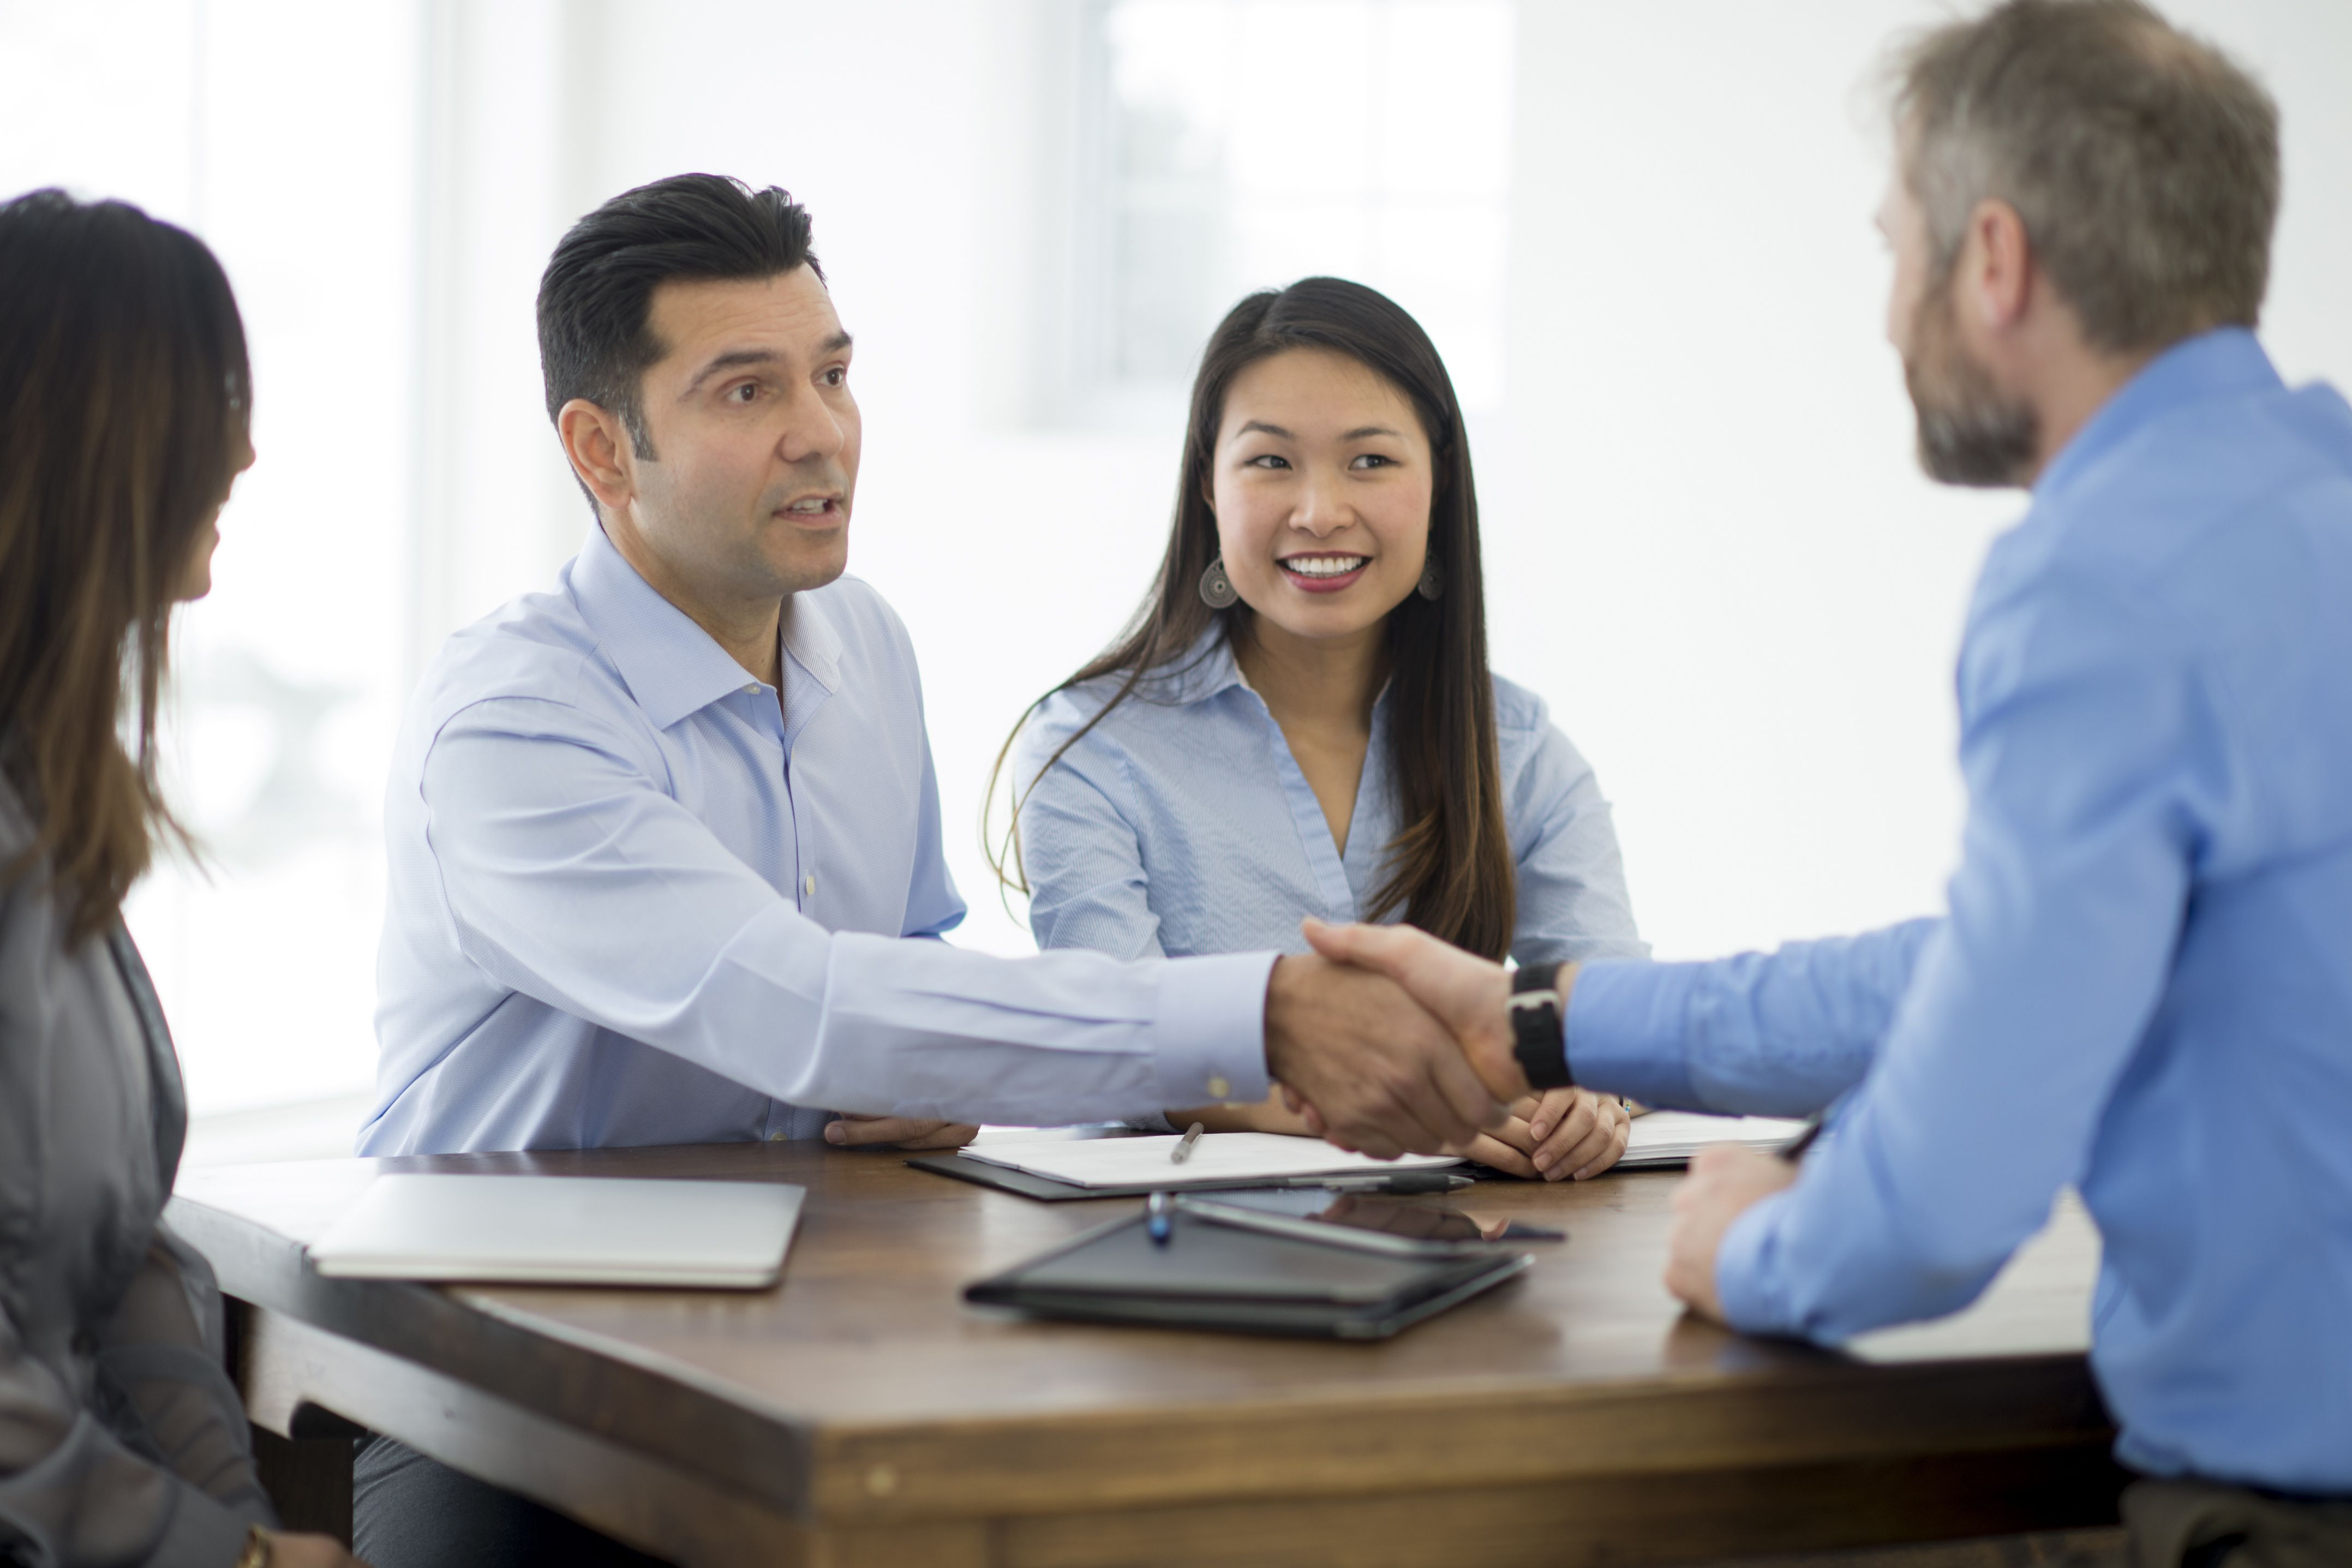 top 10 tips for success in a second interview - Facing An Interview Tips And Techniques